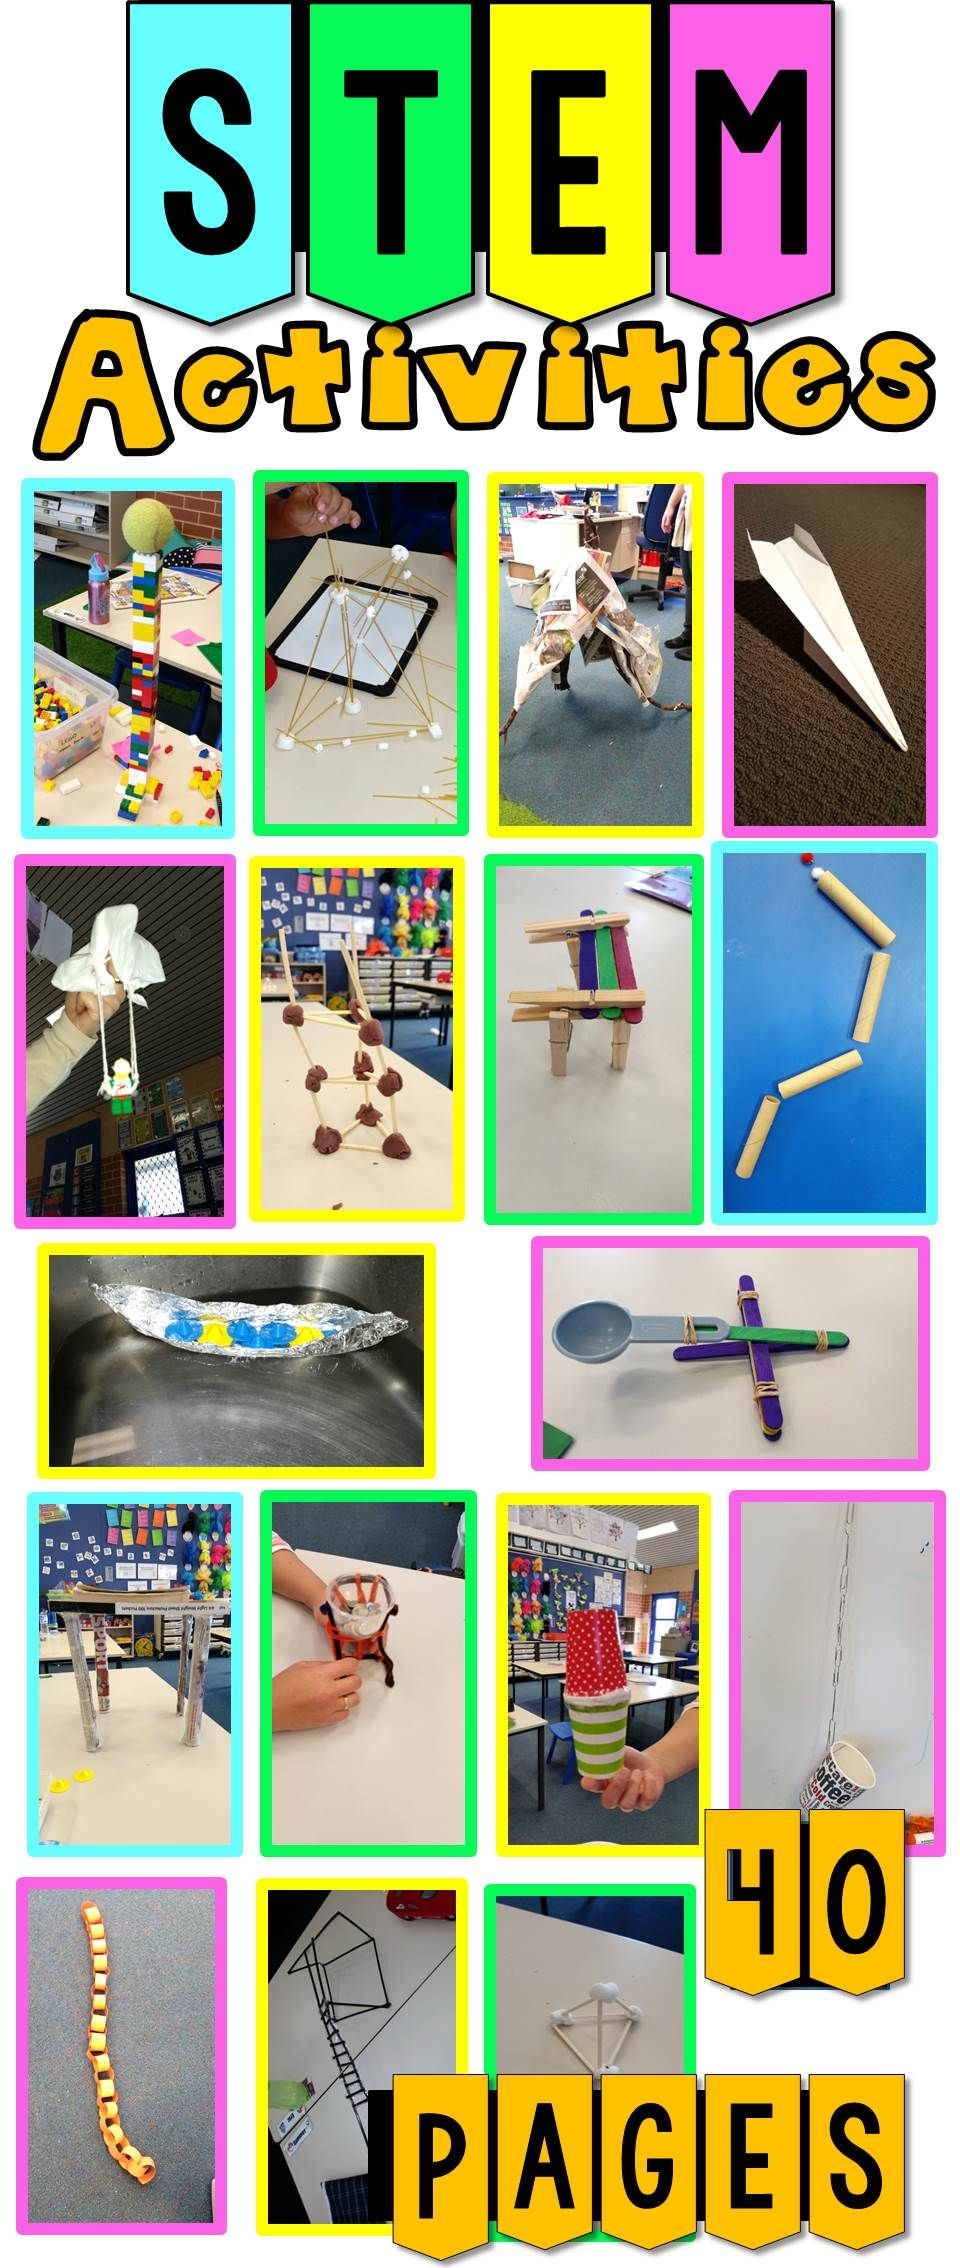 STEM Activities (20 Challenges) Pack 1